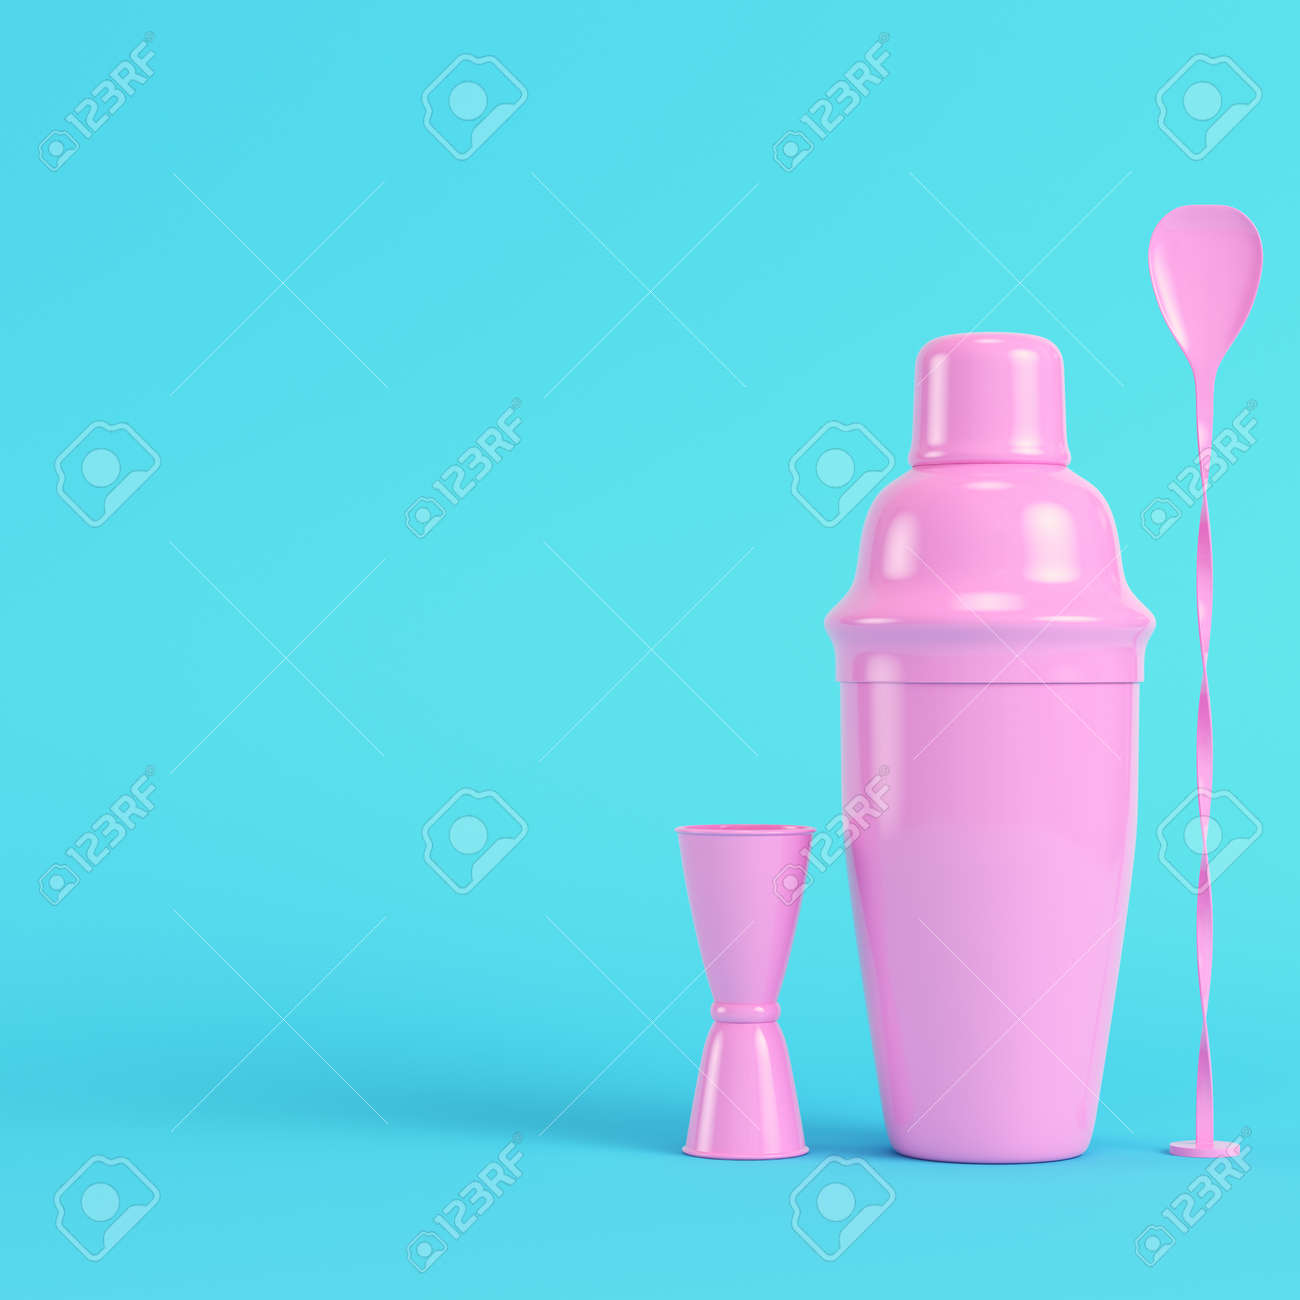 Pink cocktail shaker with jigger and mix spoon on bright blue background in pastel colors. Minimalism concept. 3d render - 170609761